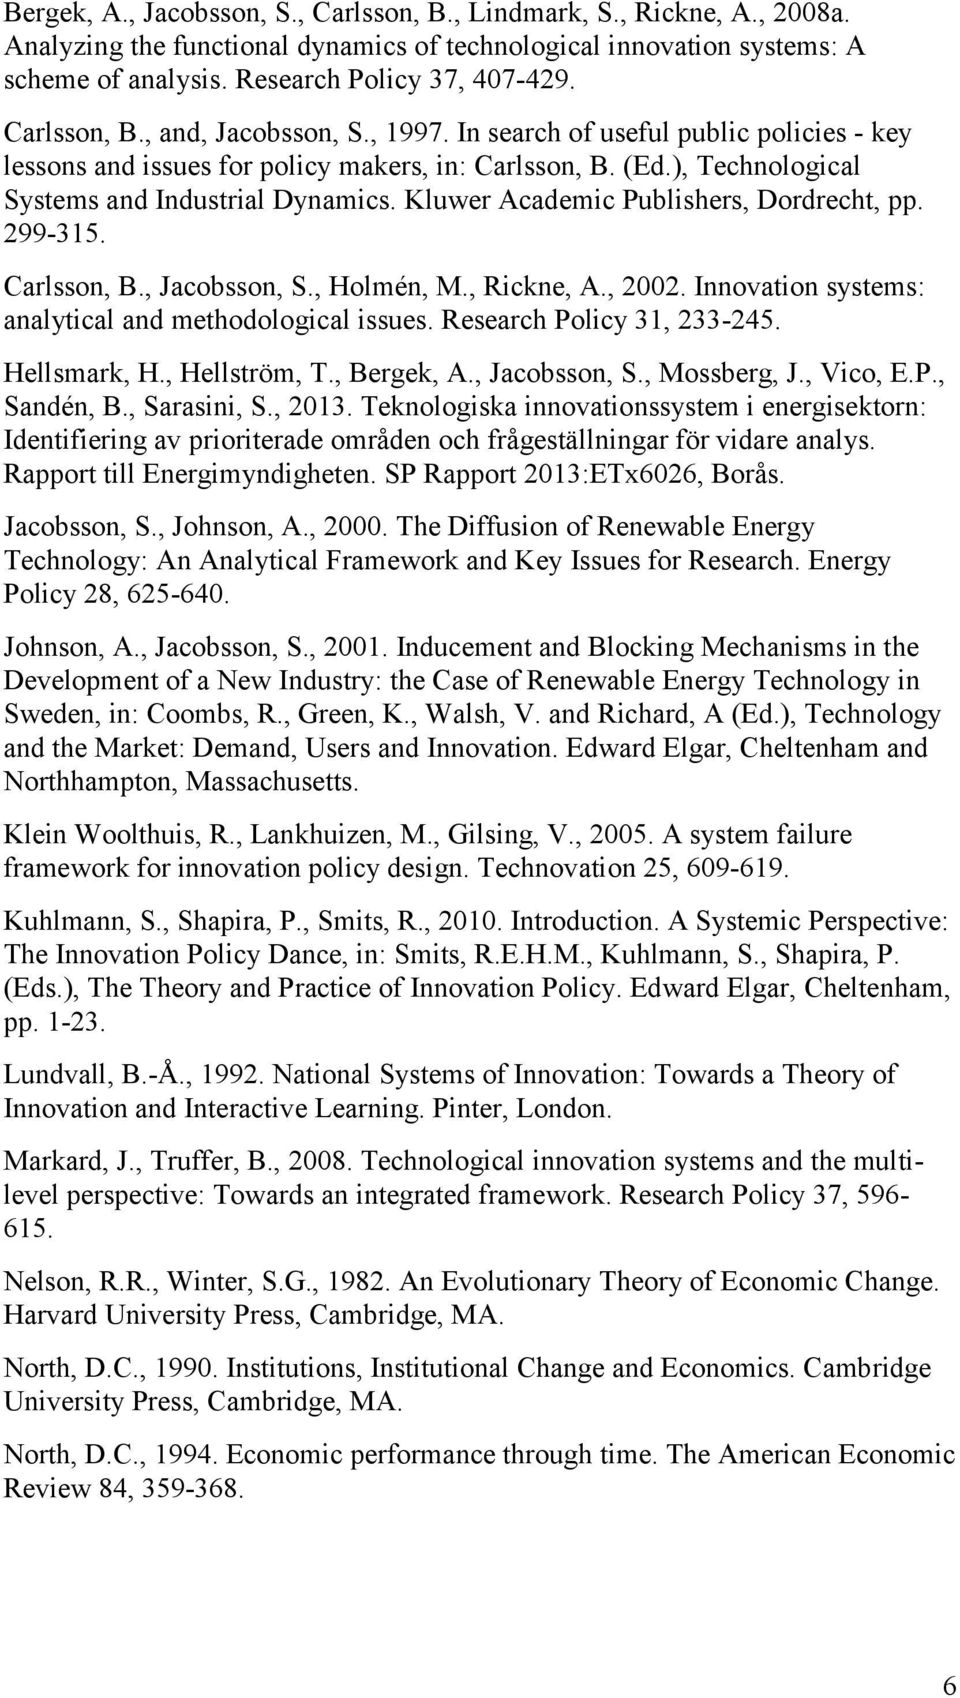 Kluwer Academic Publishers, Dordrecht, pp. 299-315. Carlsson, B., Jacobsson, S., Holmén, M., Rickne, A., 2002. Innovation systems: analytical and methodological issues. Research Policy 31, 233-245.